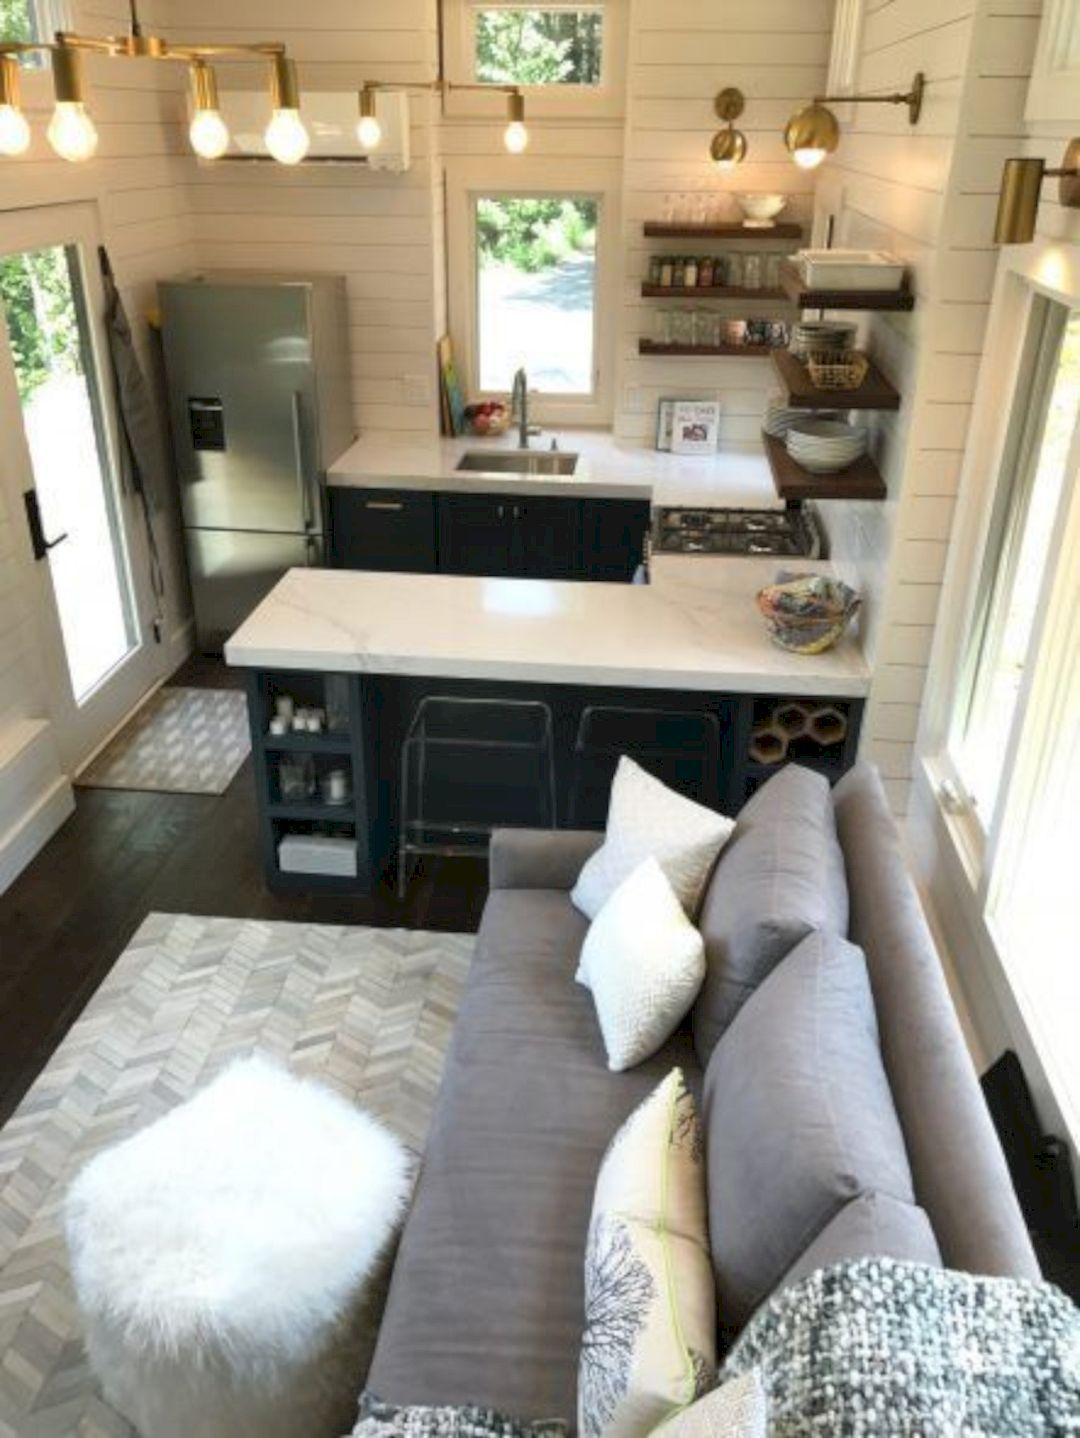 16 Tiny House Furniture Ideas Https://www.futuristarchitecture.com/32392